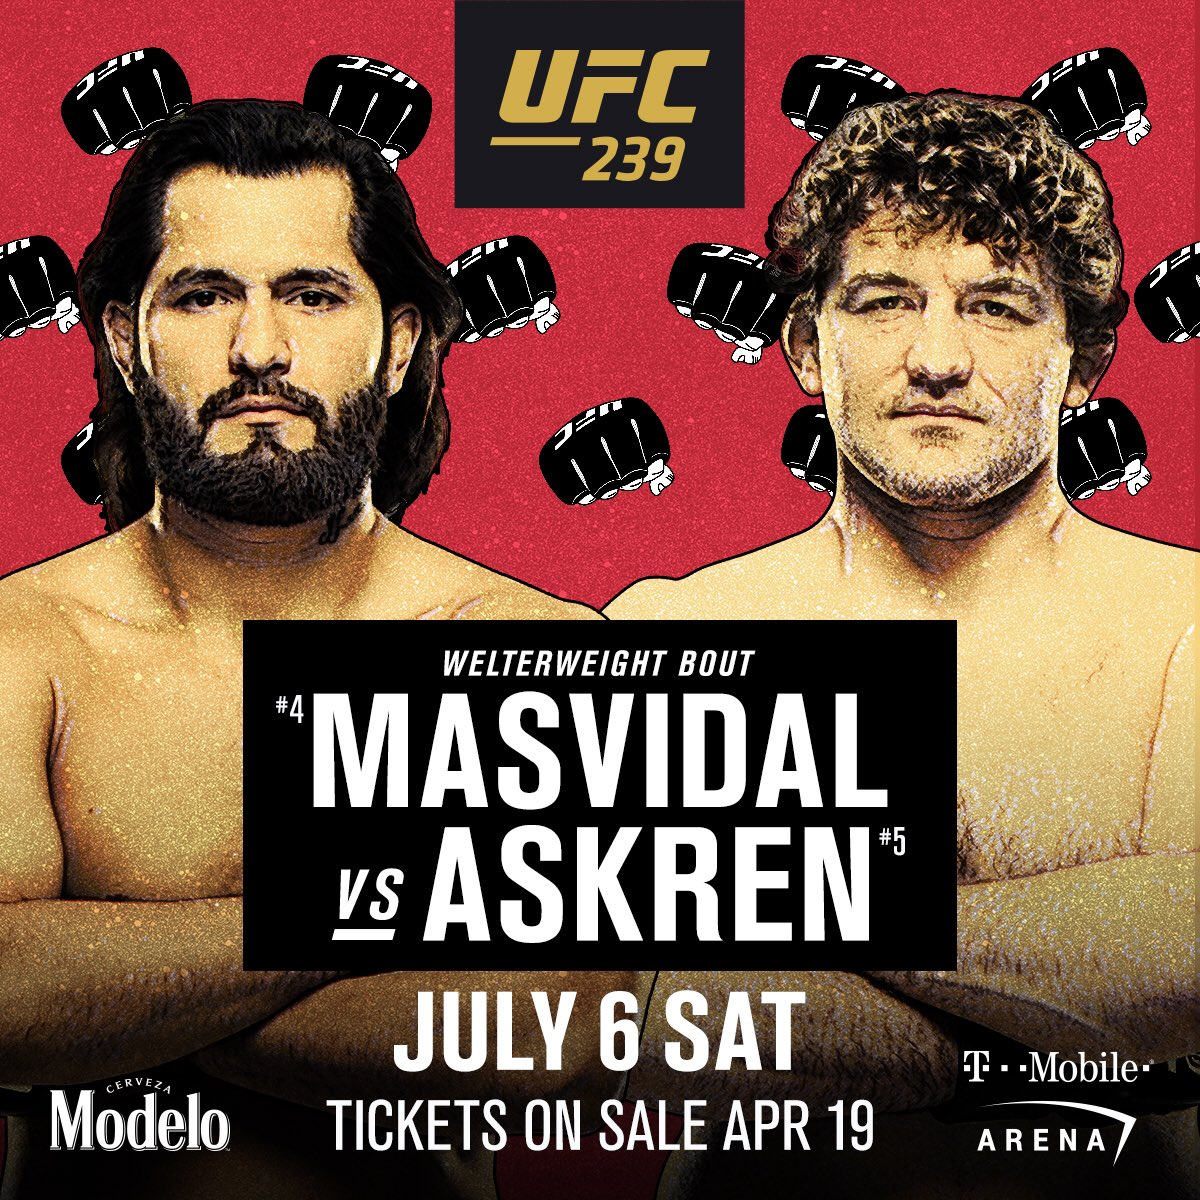 STACKED 📚 @GamebredFighter meets @BenAskren at #UFC239 during International Fight Week! #UFCFightWeek